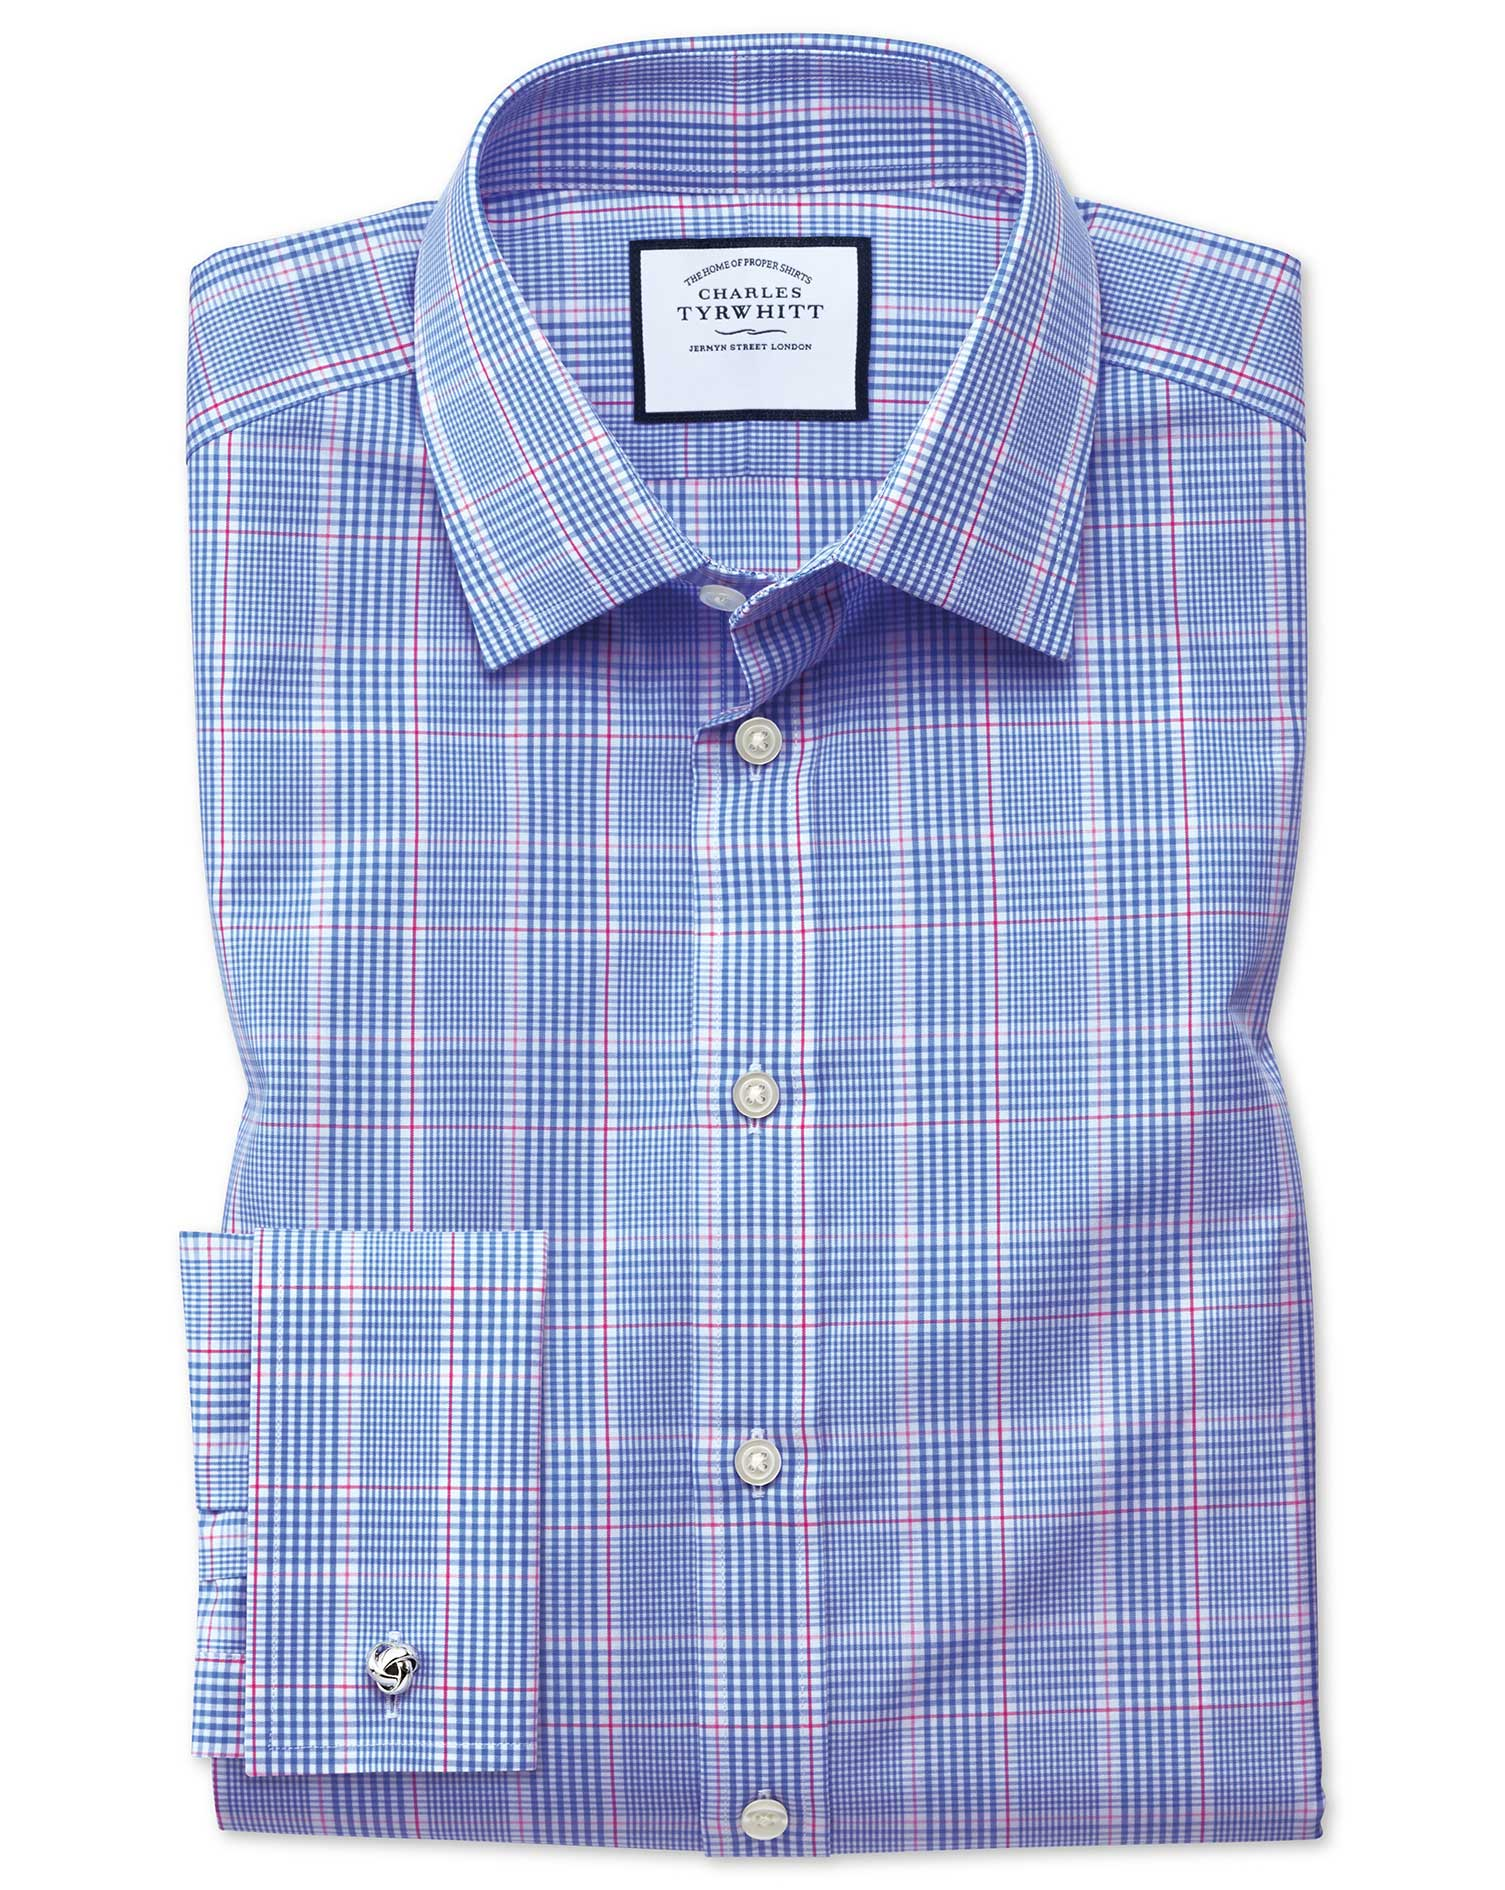 Slim Fit Prince Of Wales Check Blue Cotton Formal Shirt Double Cuff Size 15.5/32 by Charles Tyrwhitt